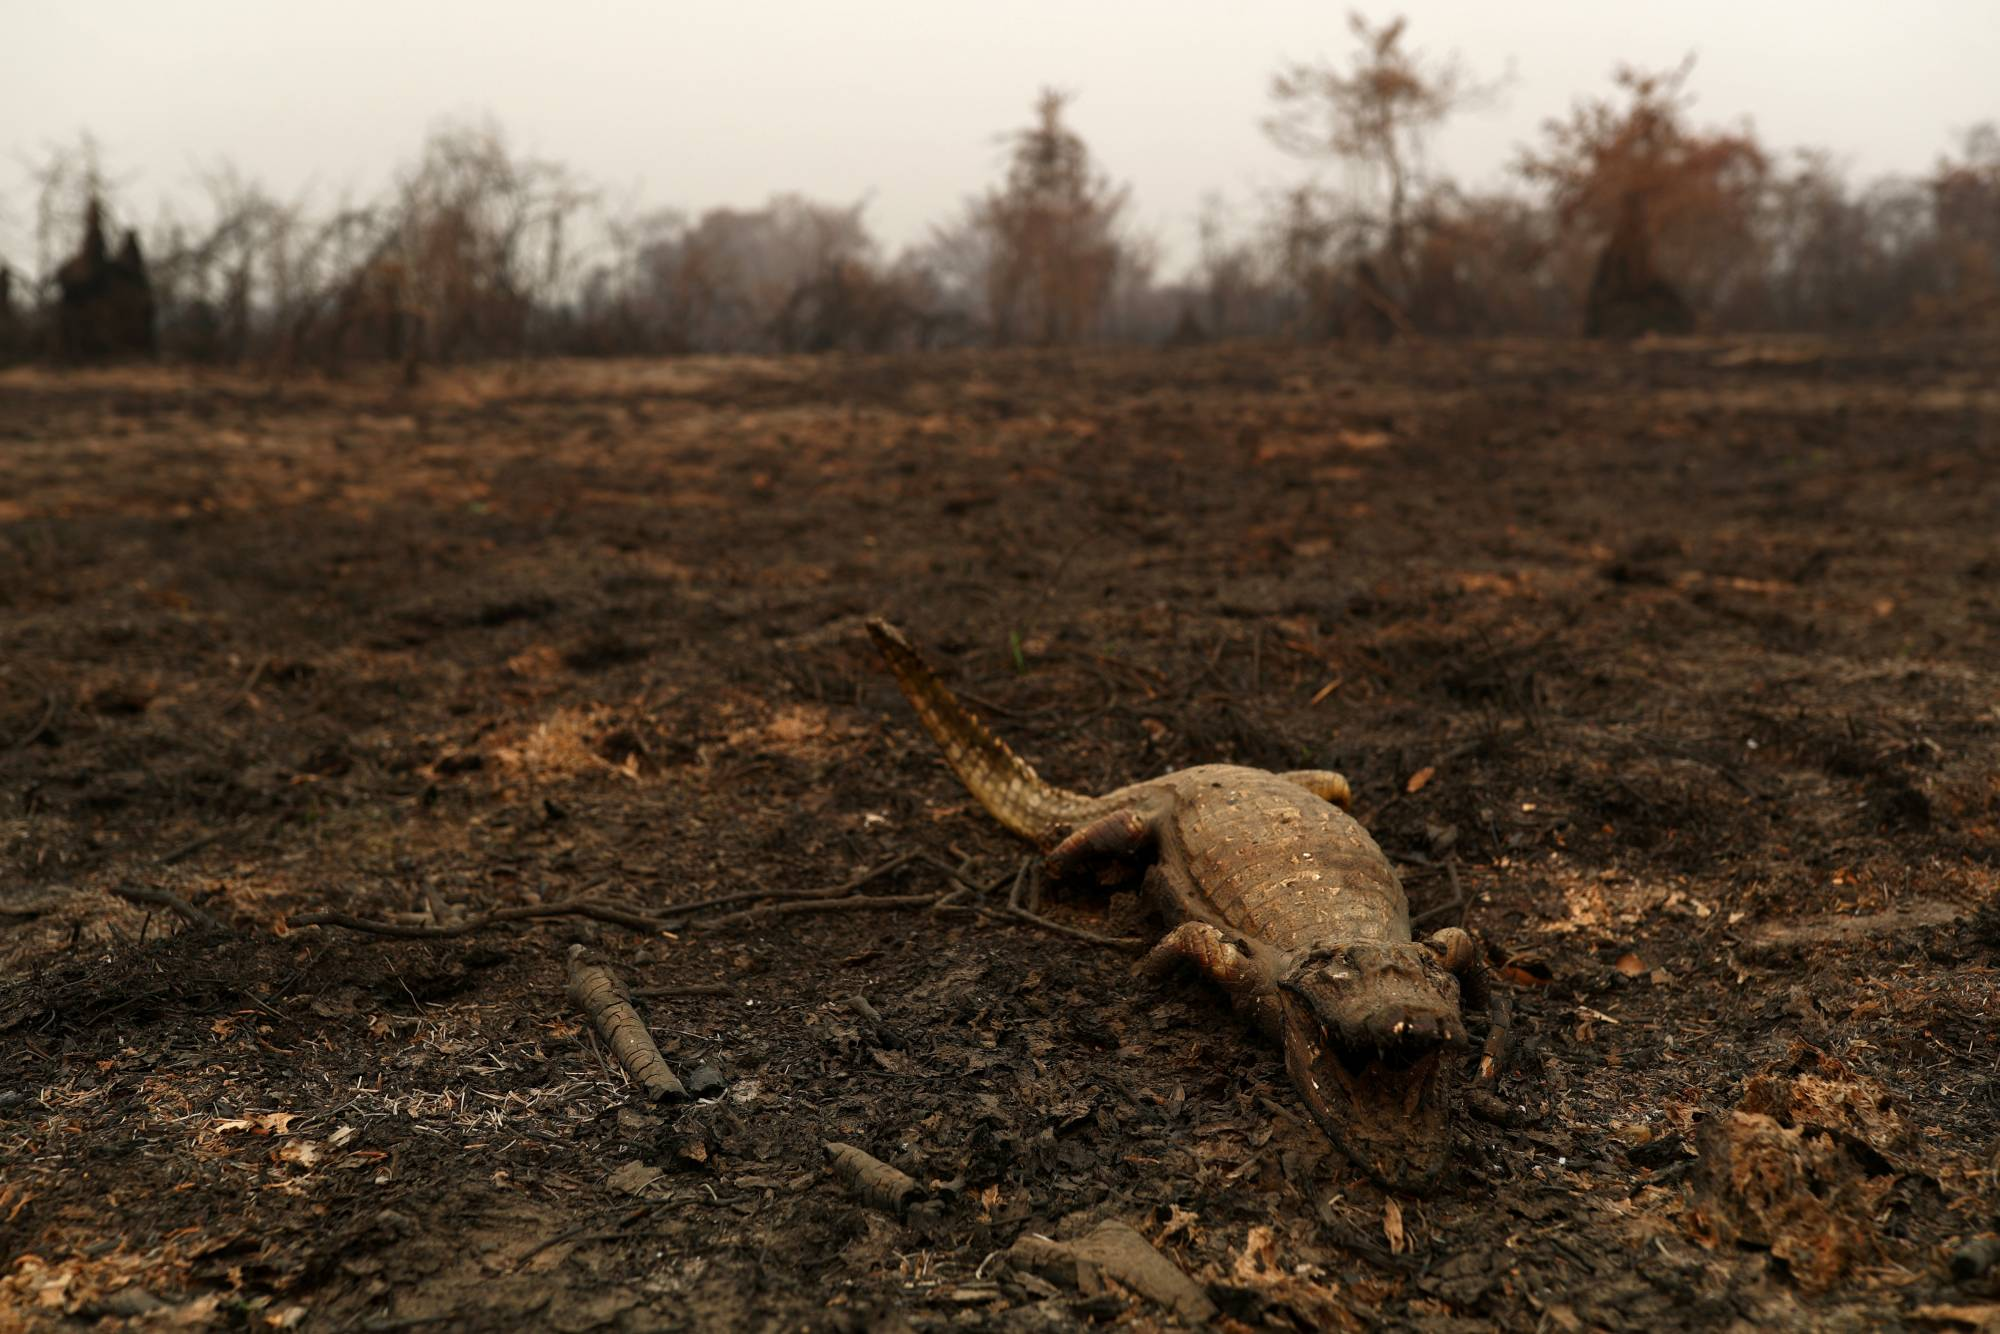 A dead caiman in a burned area of the Pantanal | REUTERS